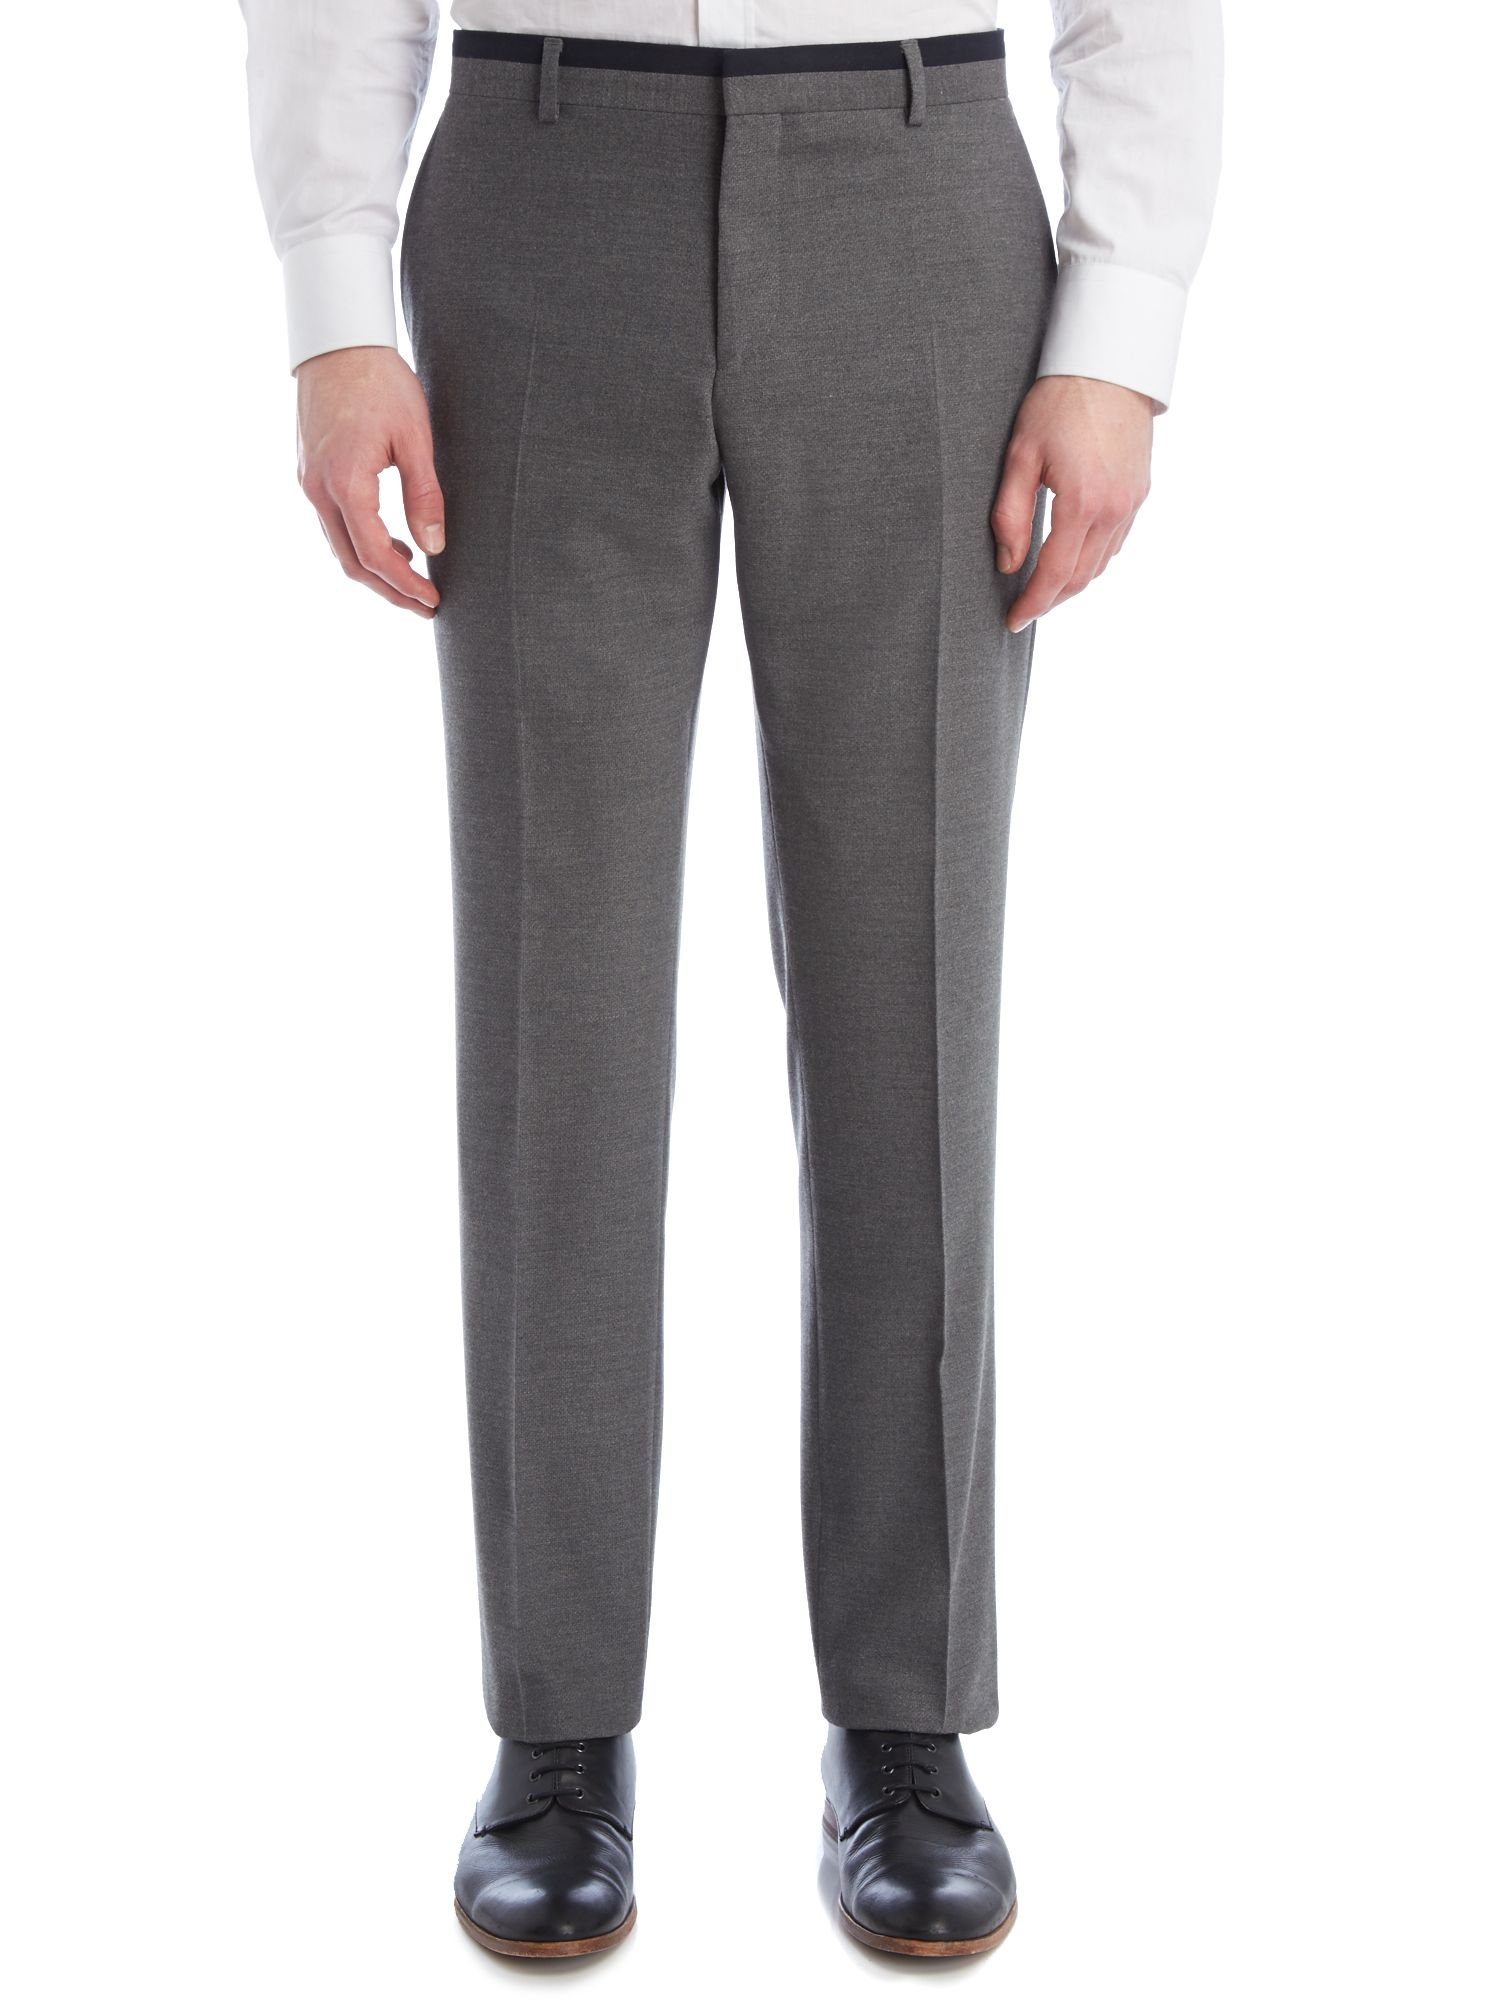 Whitman suit trouser